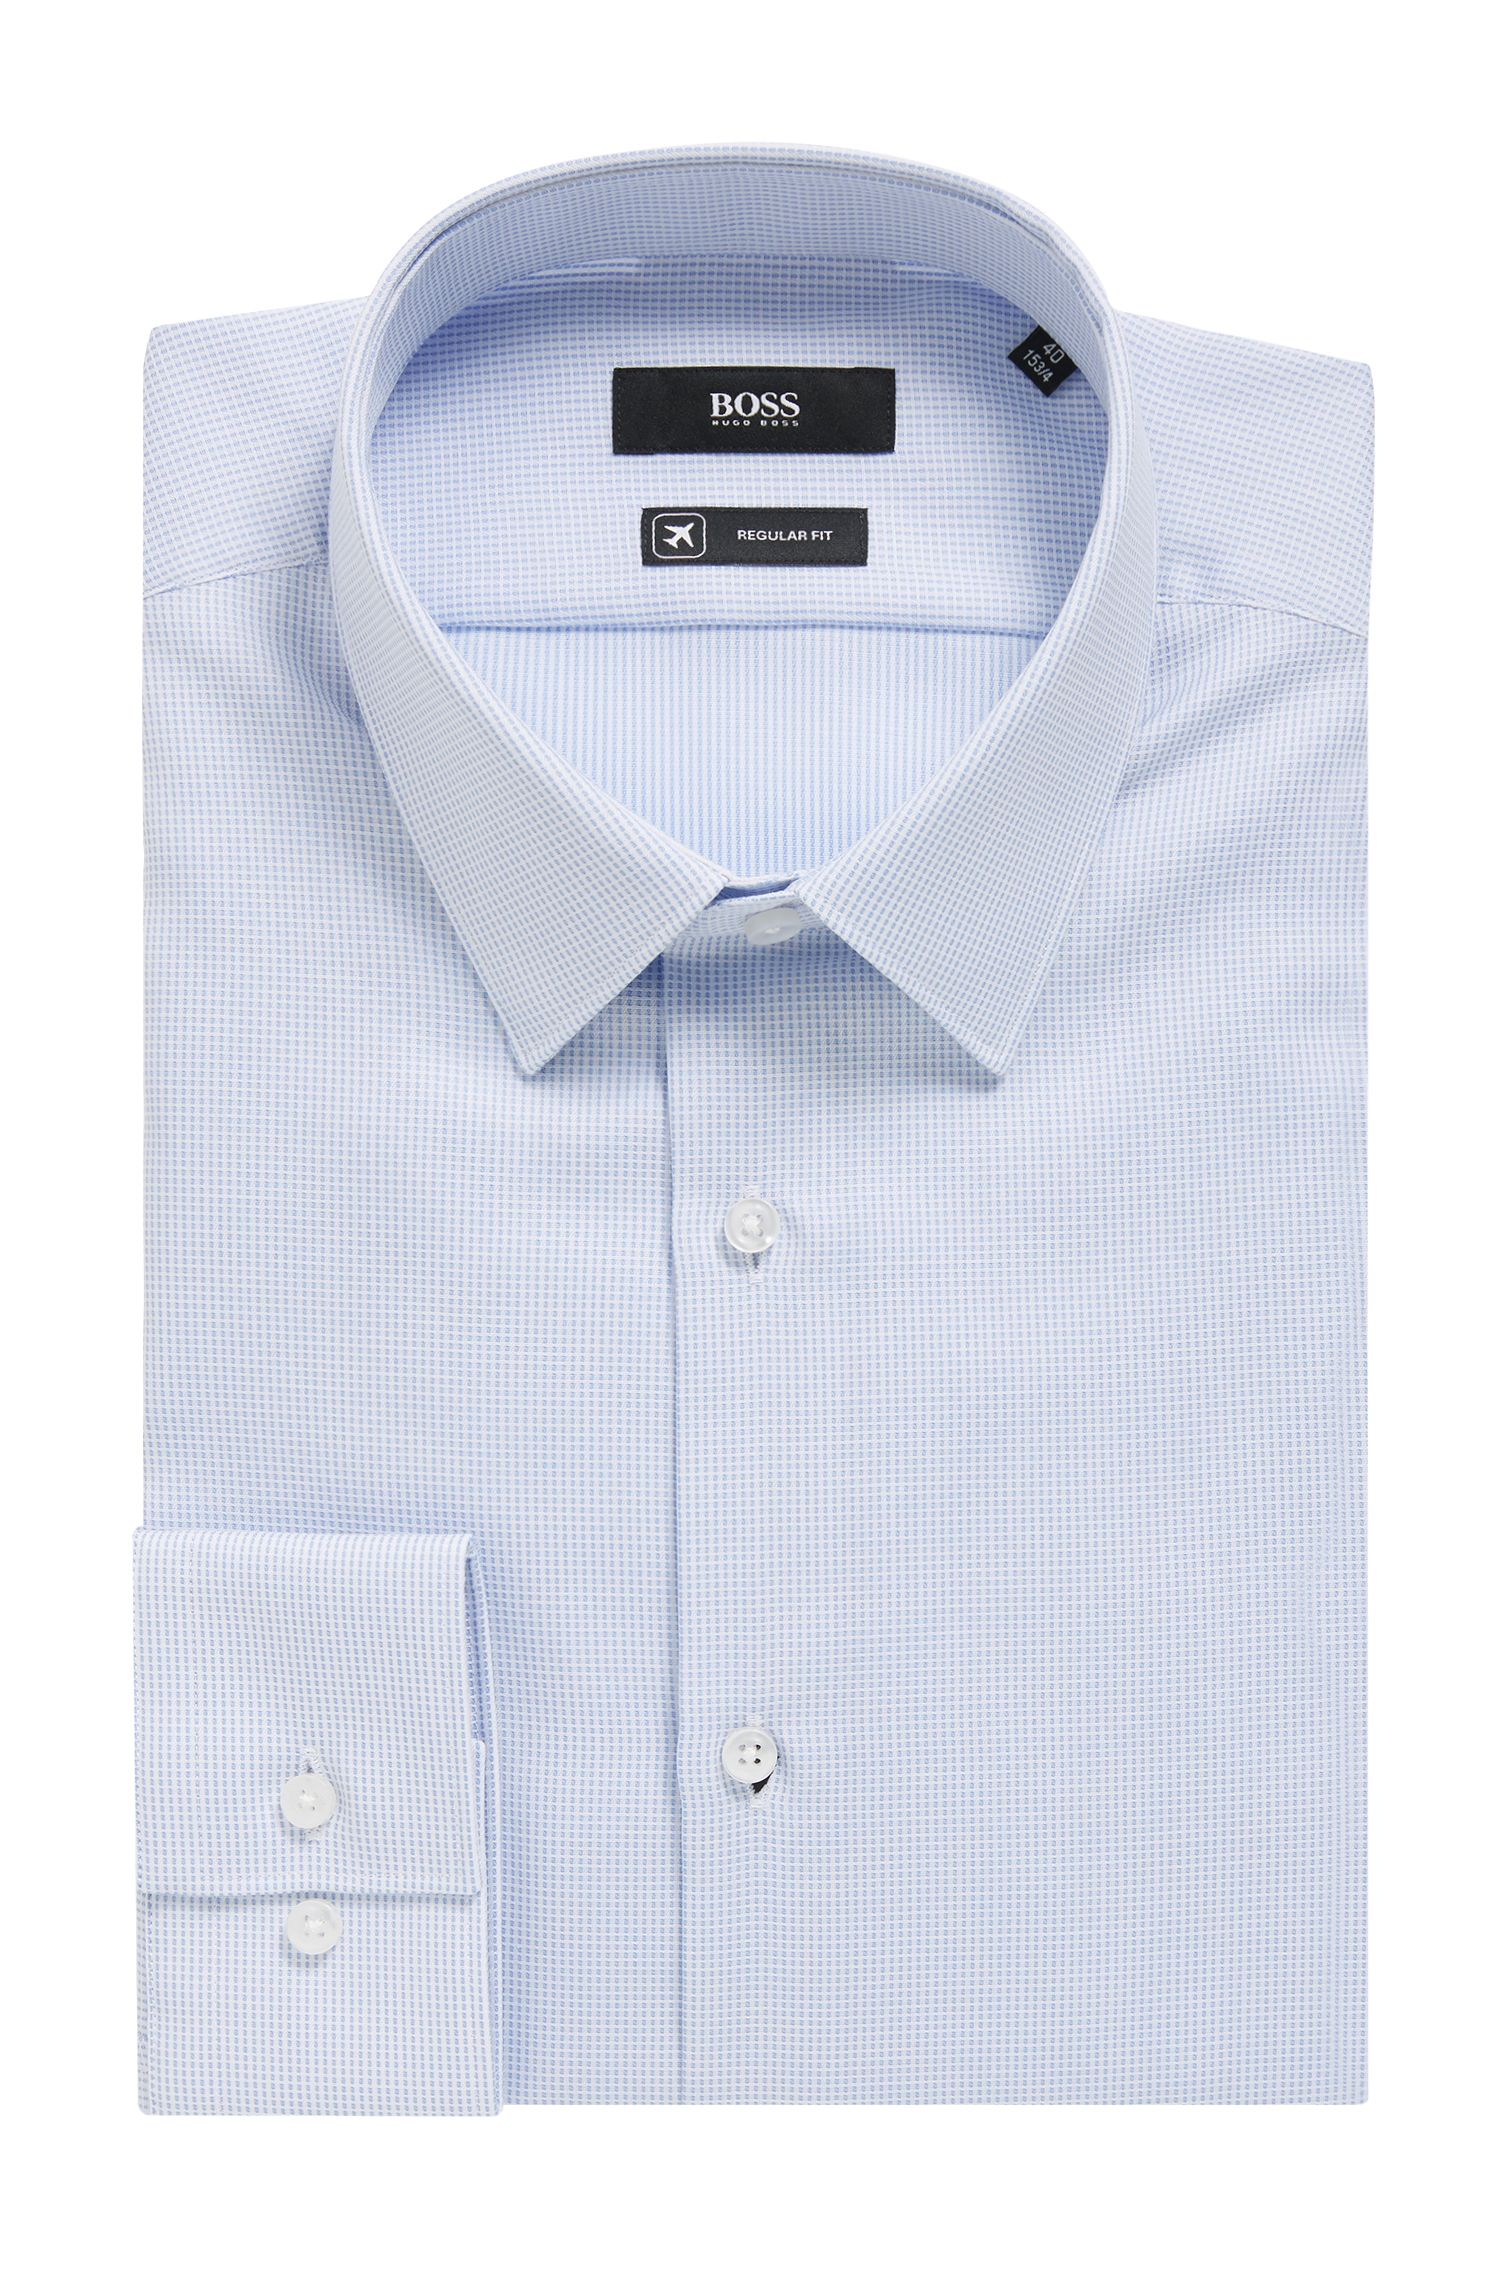 Swiss-cotton shirt with aloe vera treatment